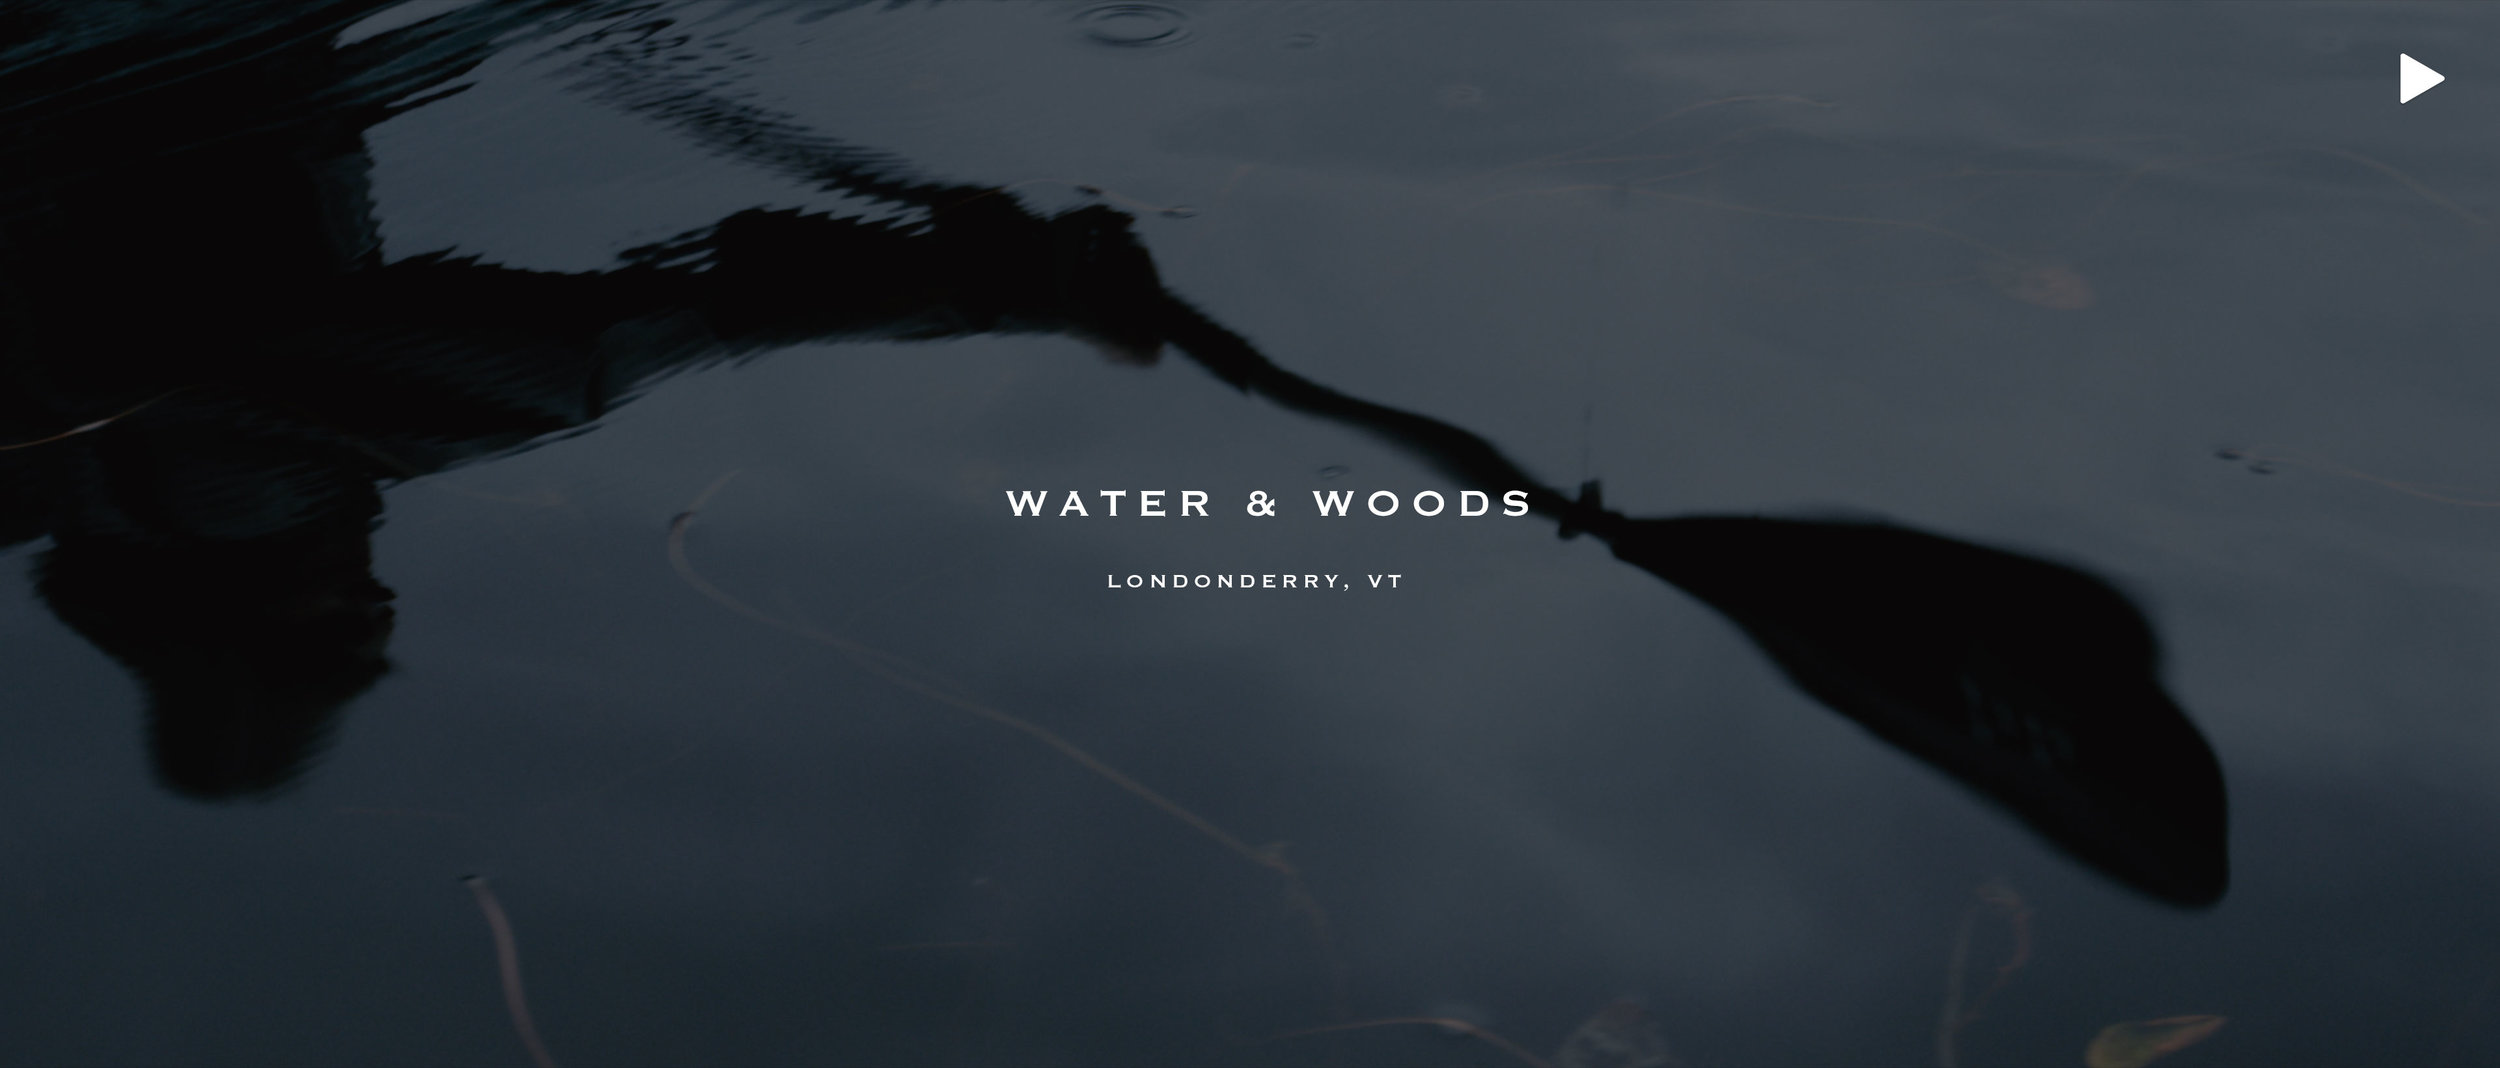 water-&-woods-(with-pla-button).jpg